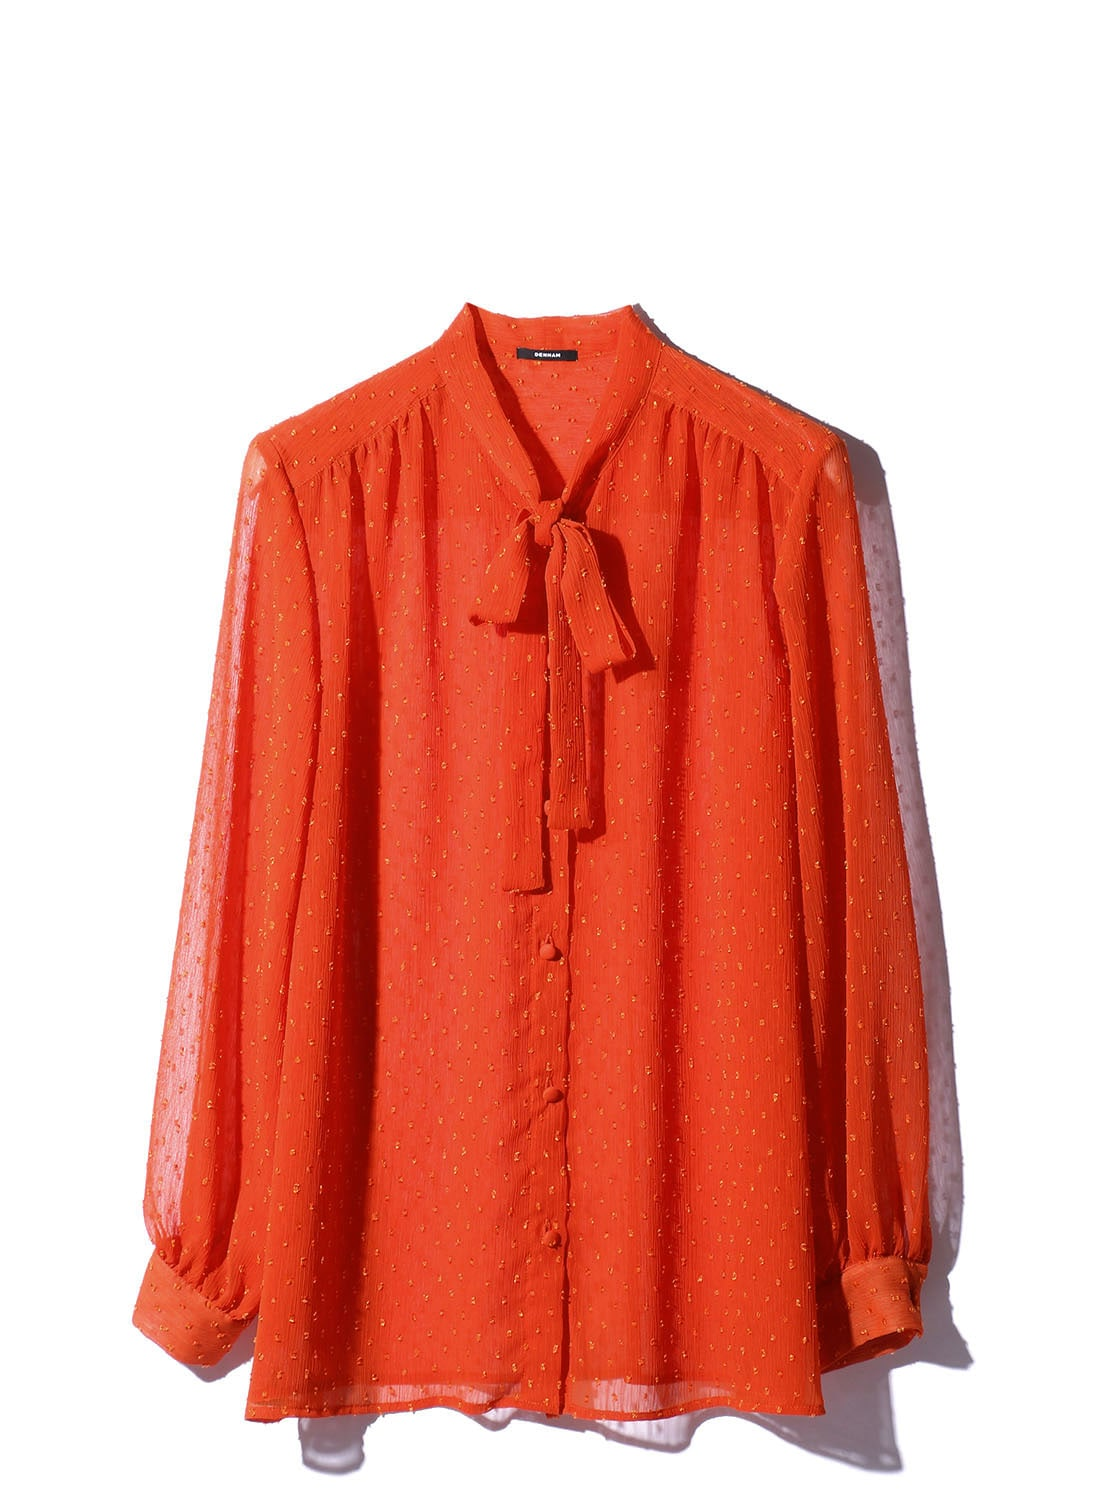 【日本限定】 DOT DRAPE BLOUSE